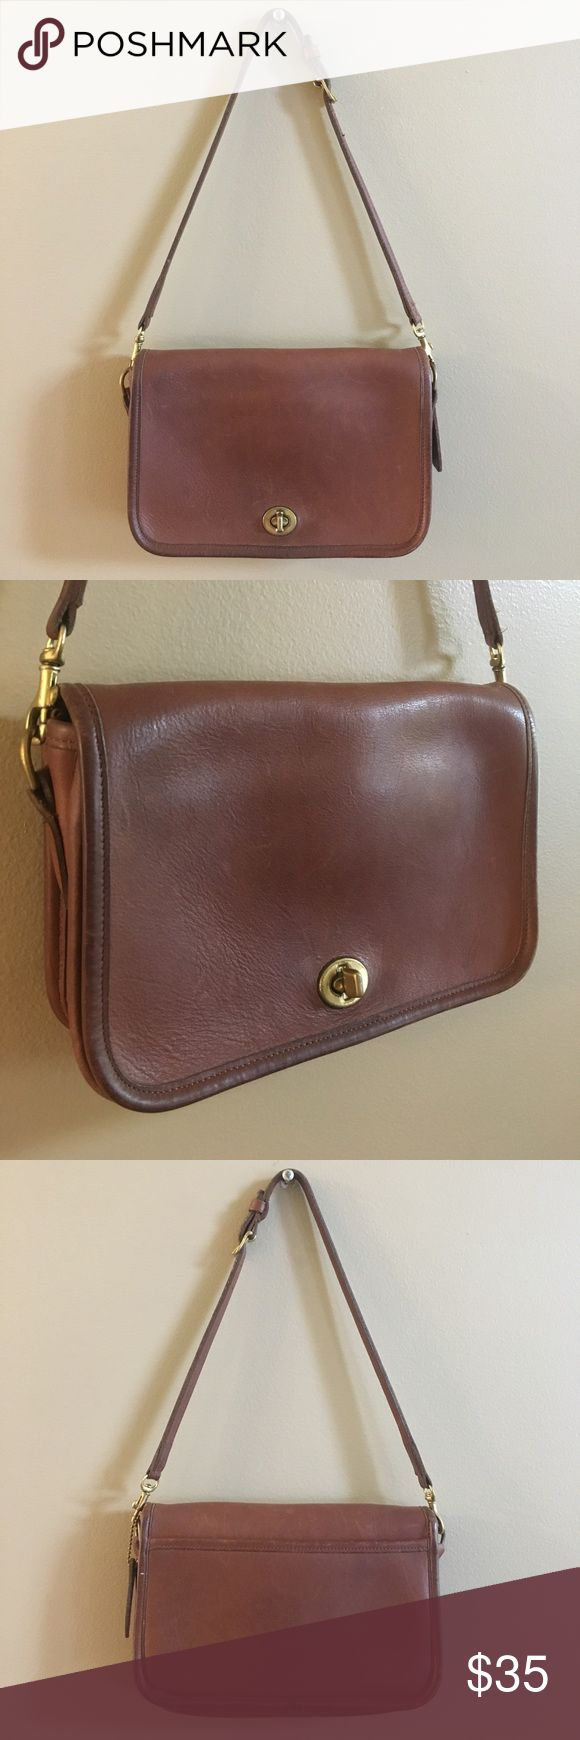 Vintage Coach Legacy Penny Bag Purse Good condition! Please send me any questions, thanks! Coach Bags Shoulder Bags